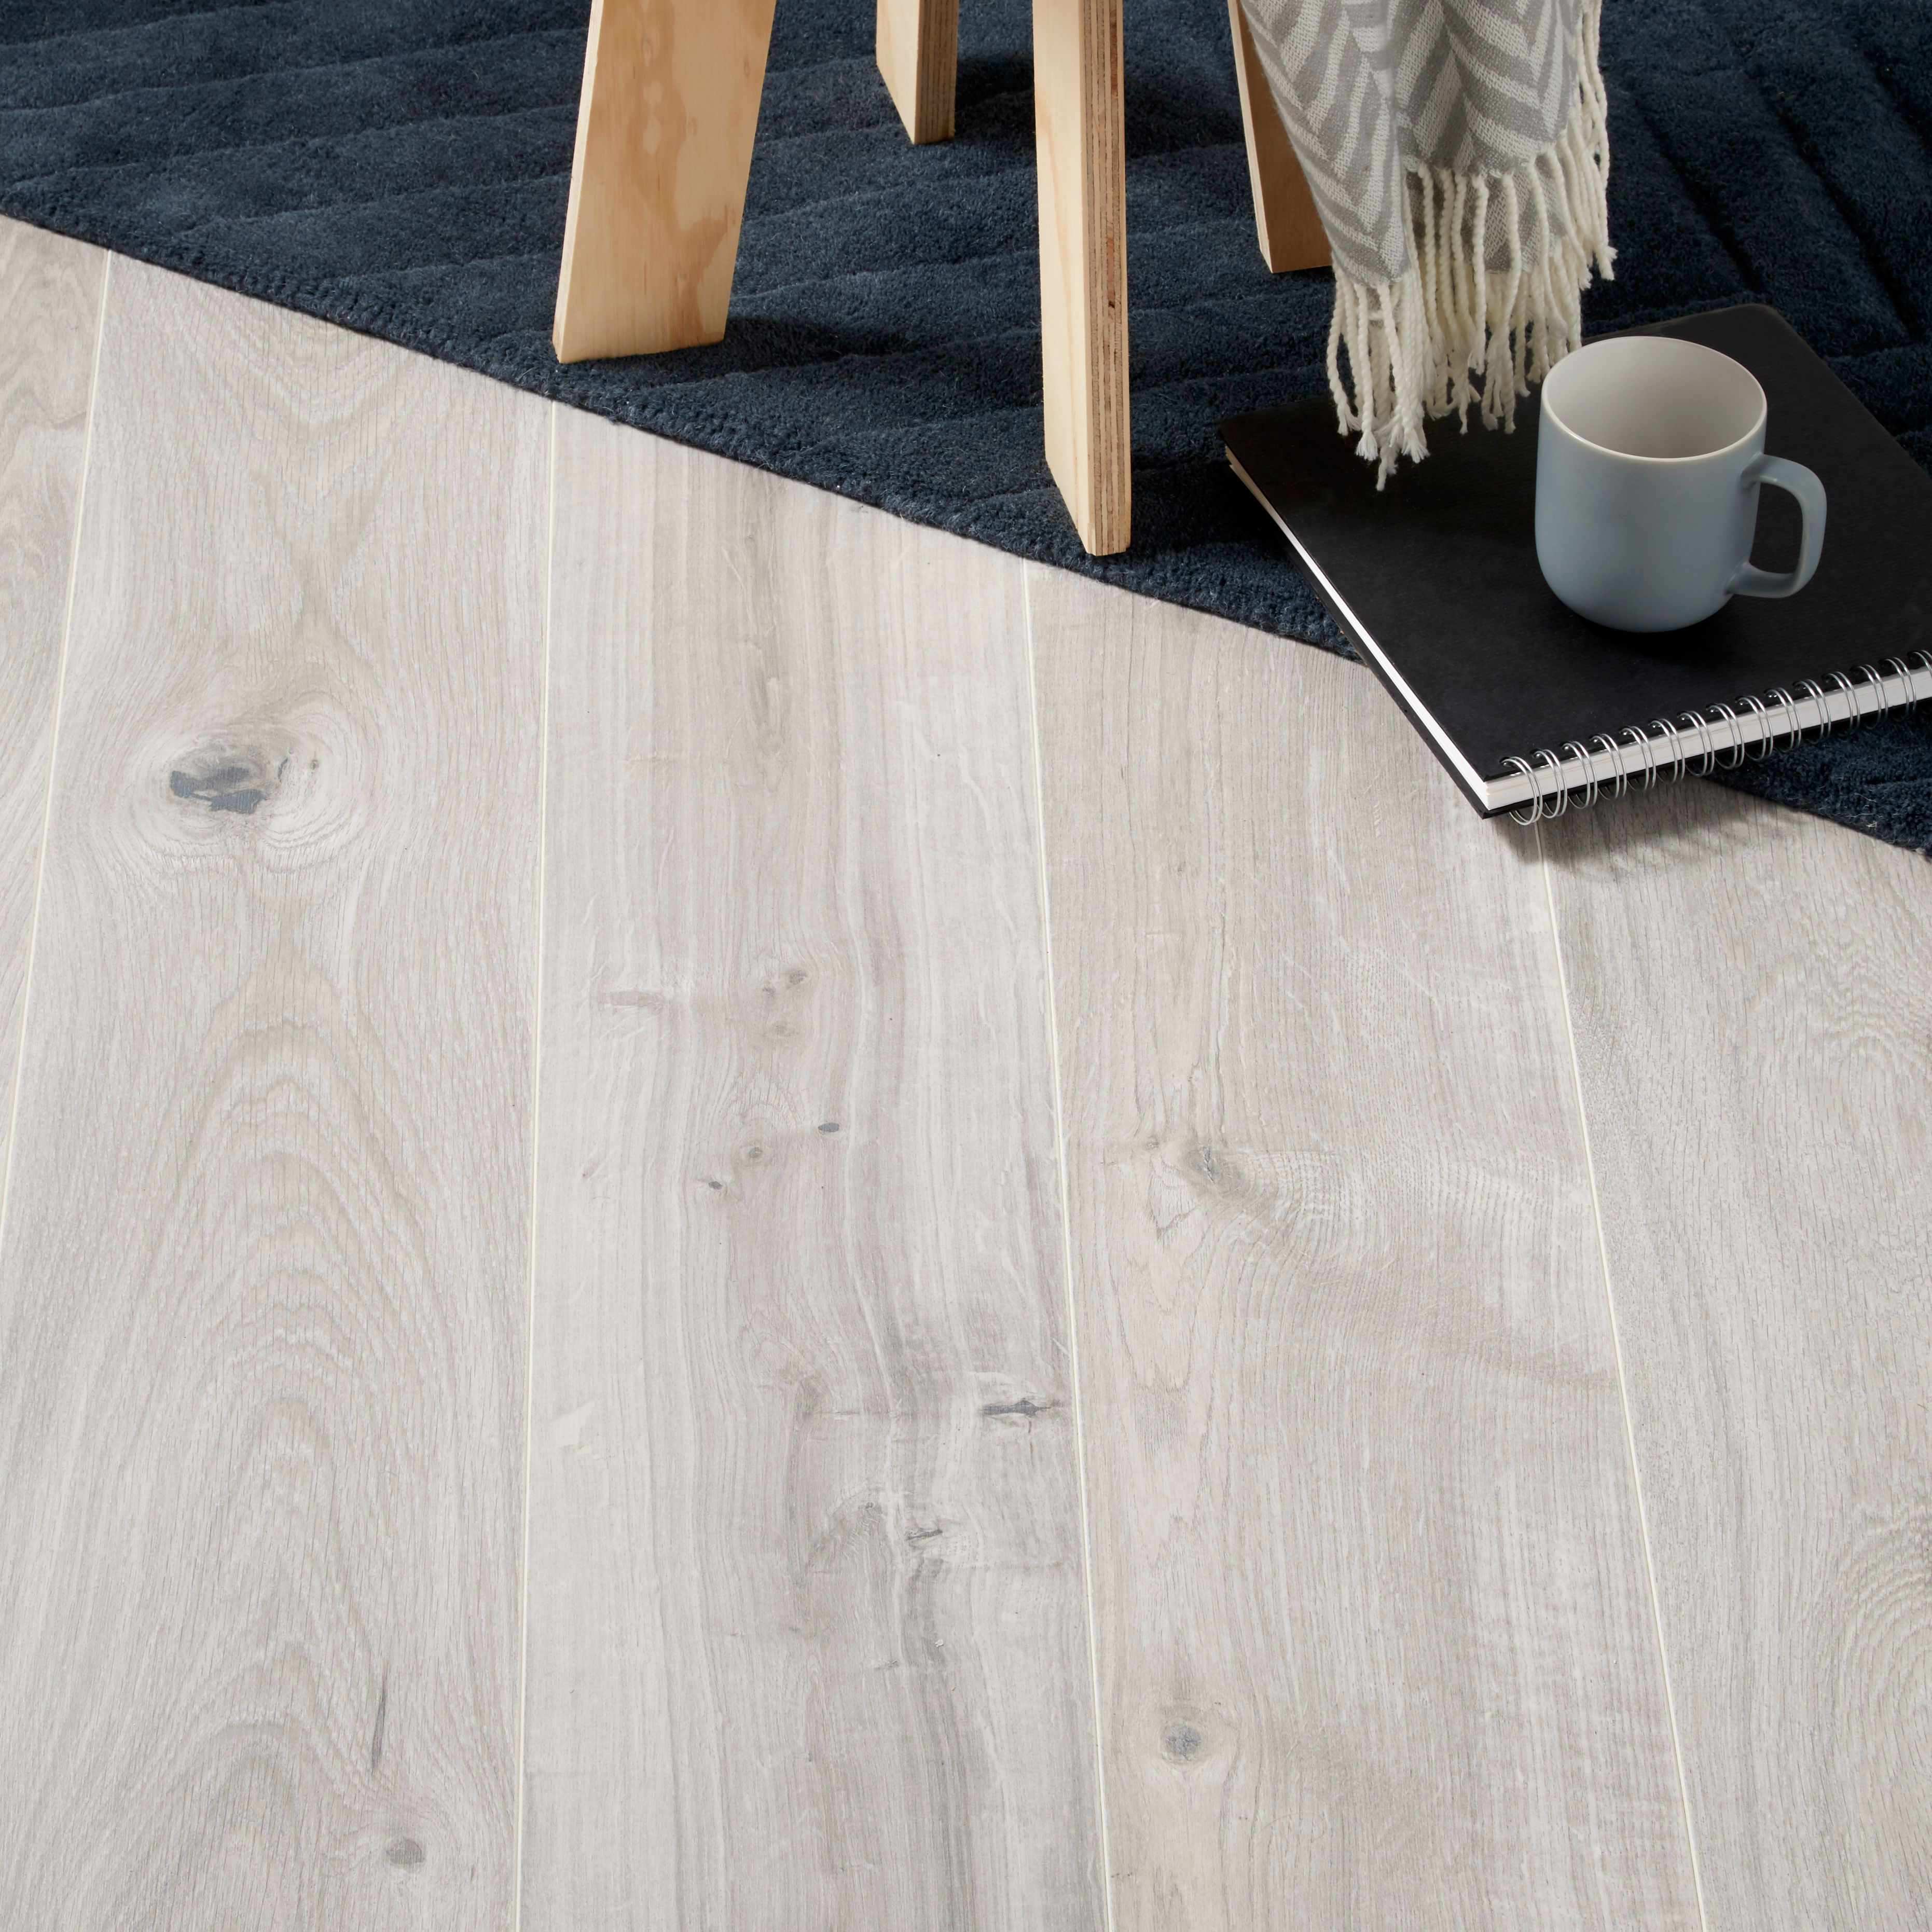 gladstone grey oak effect laminate flooring m pack. Black Bedroom Furniture Sets. Home Design Ideas